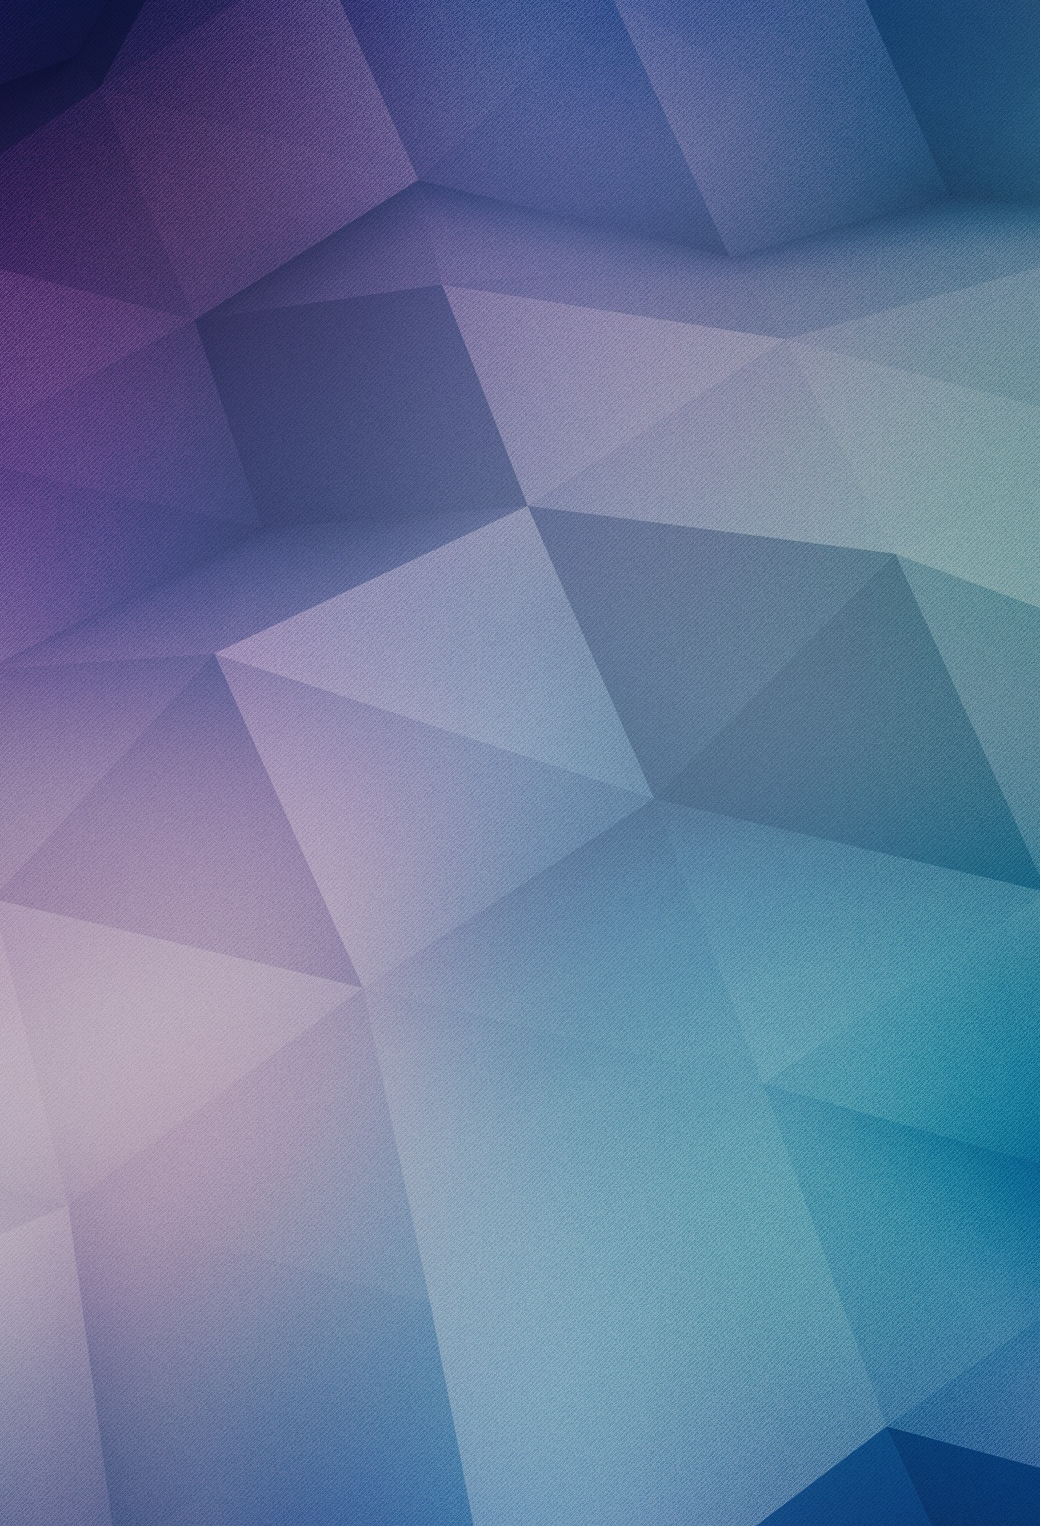 Wallpapers of the week: parallax ready walls for iOS 7